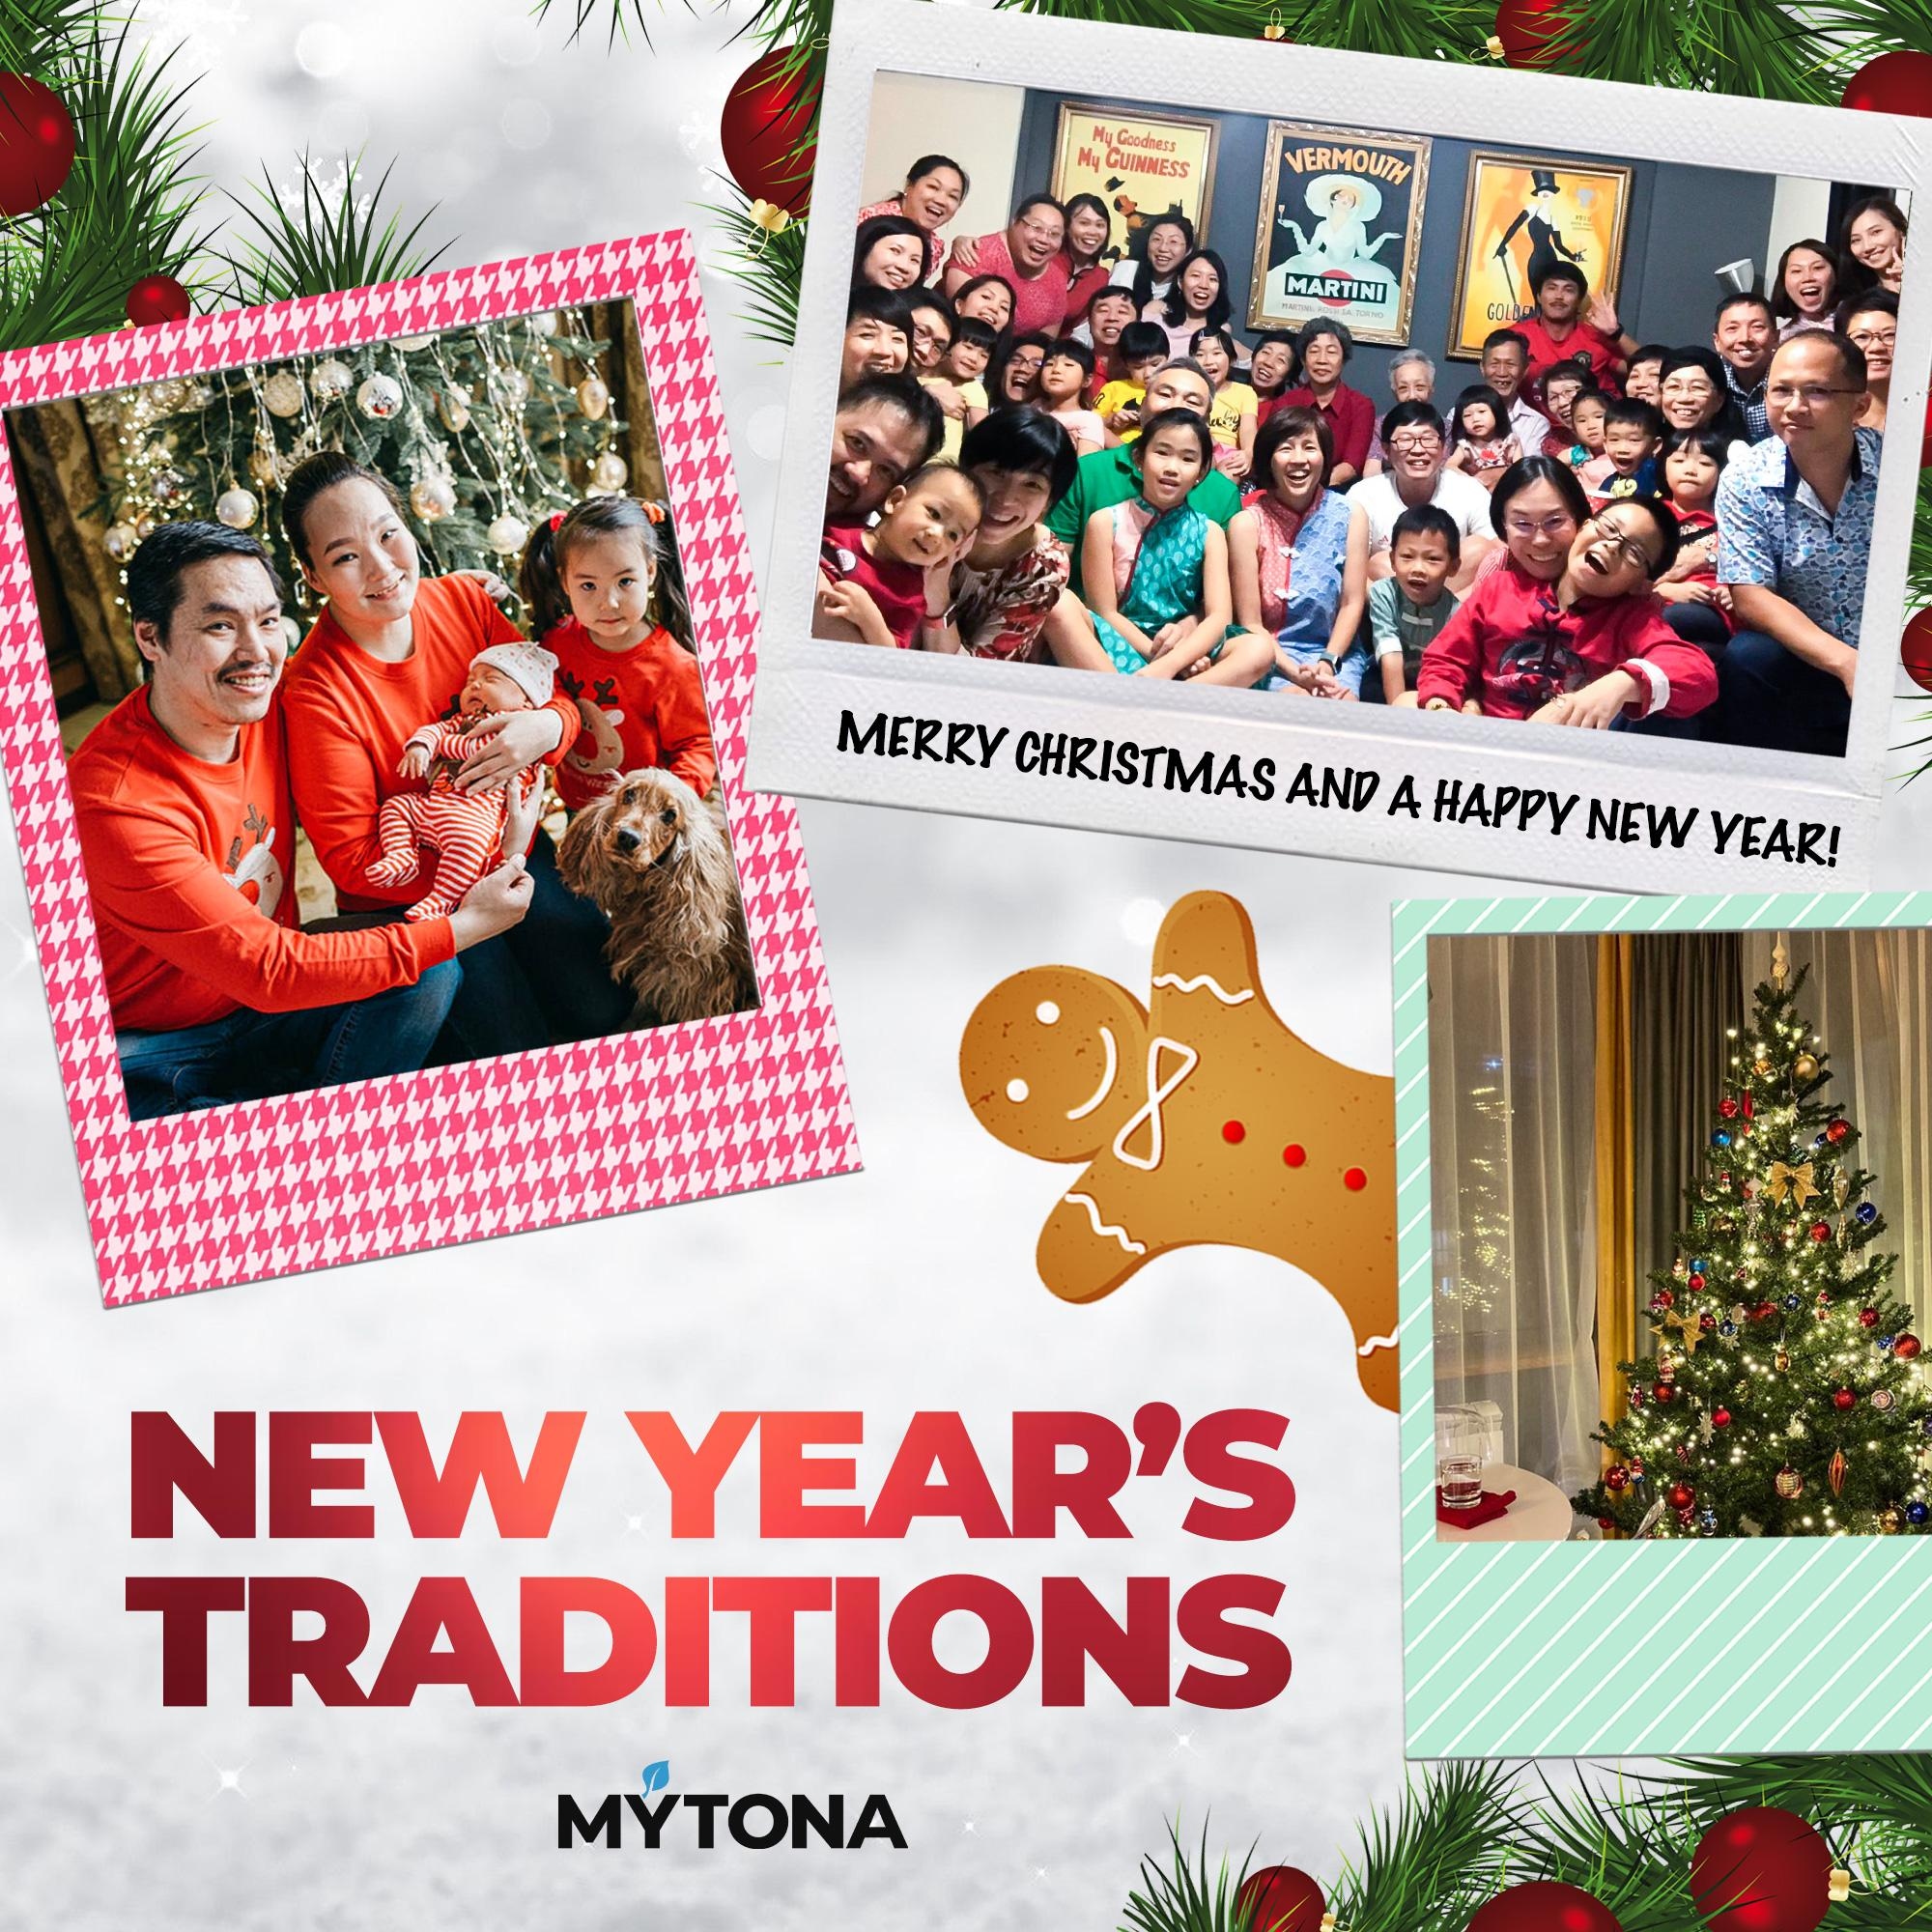 What New Year's traditions do mytonians from around the world have?